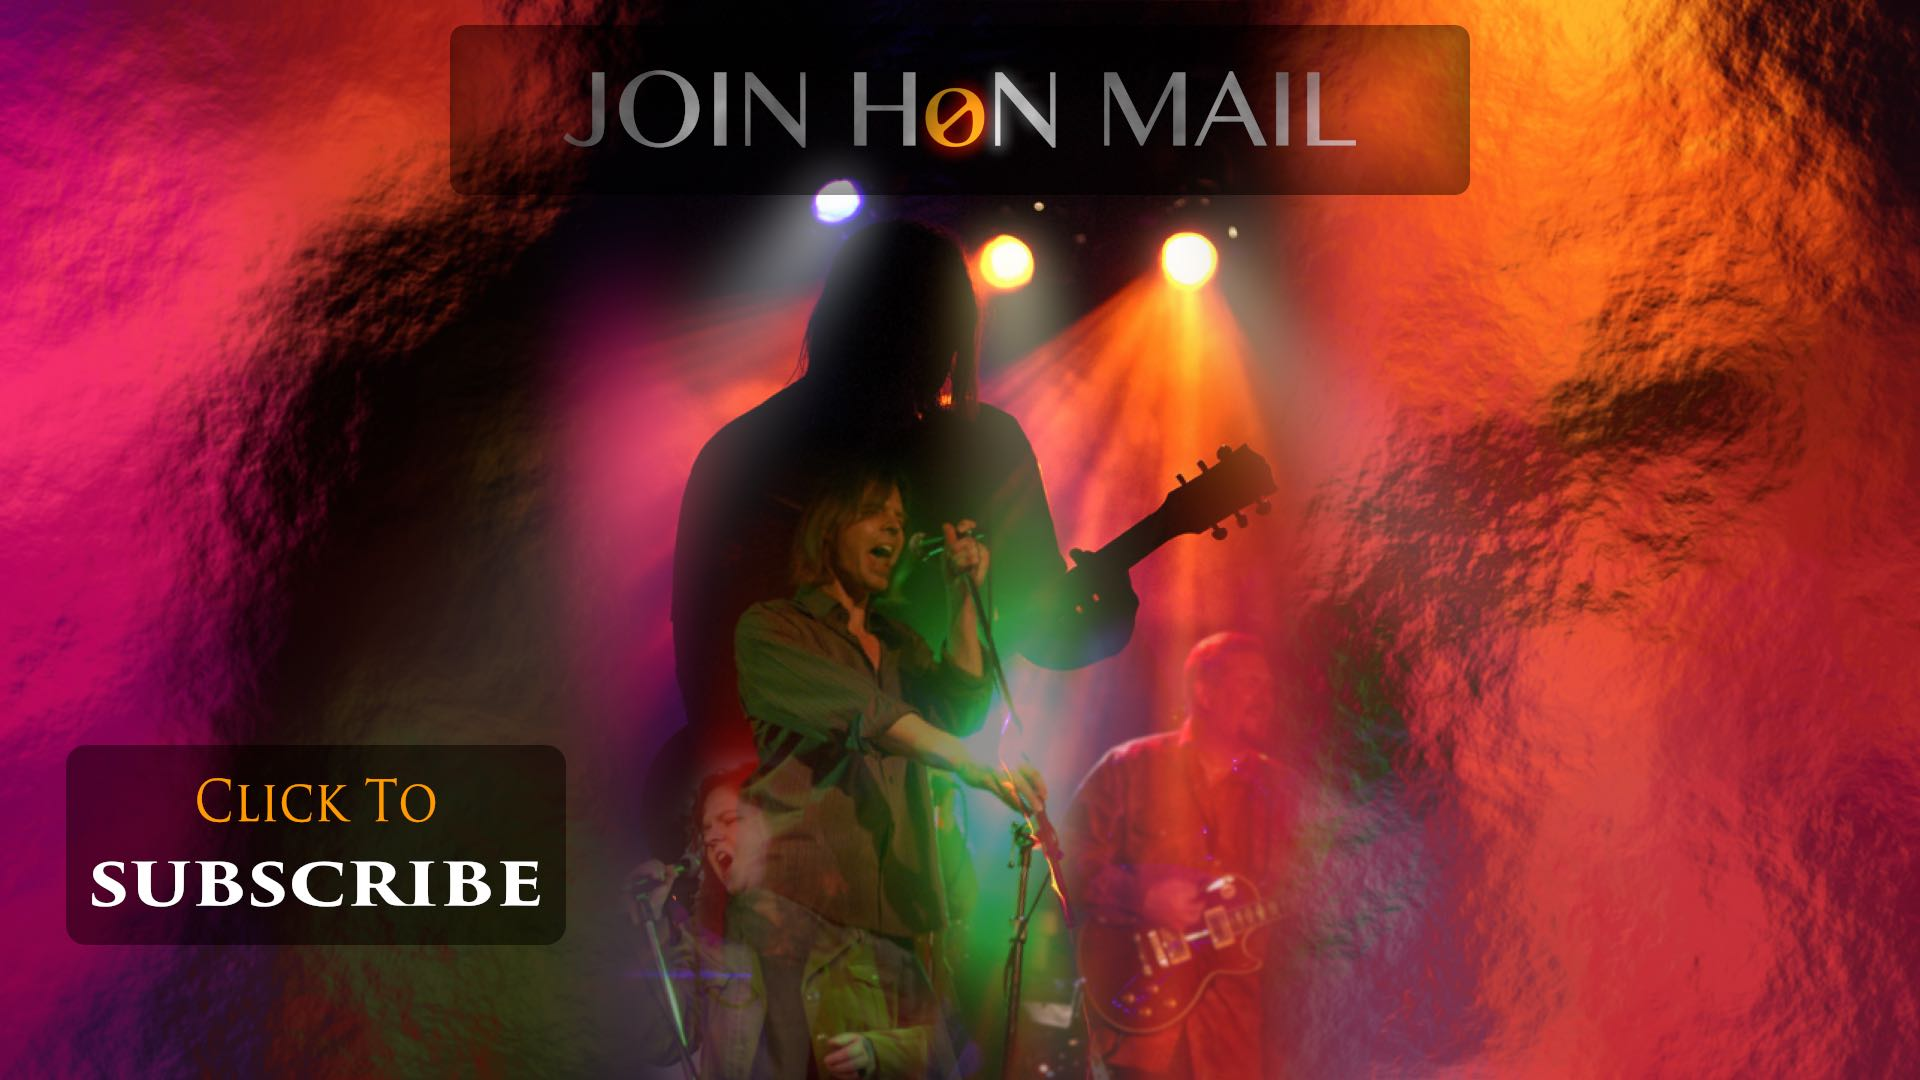 Join Mailing List Image